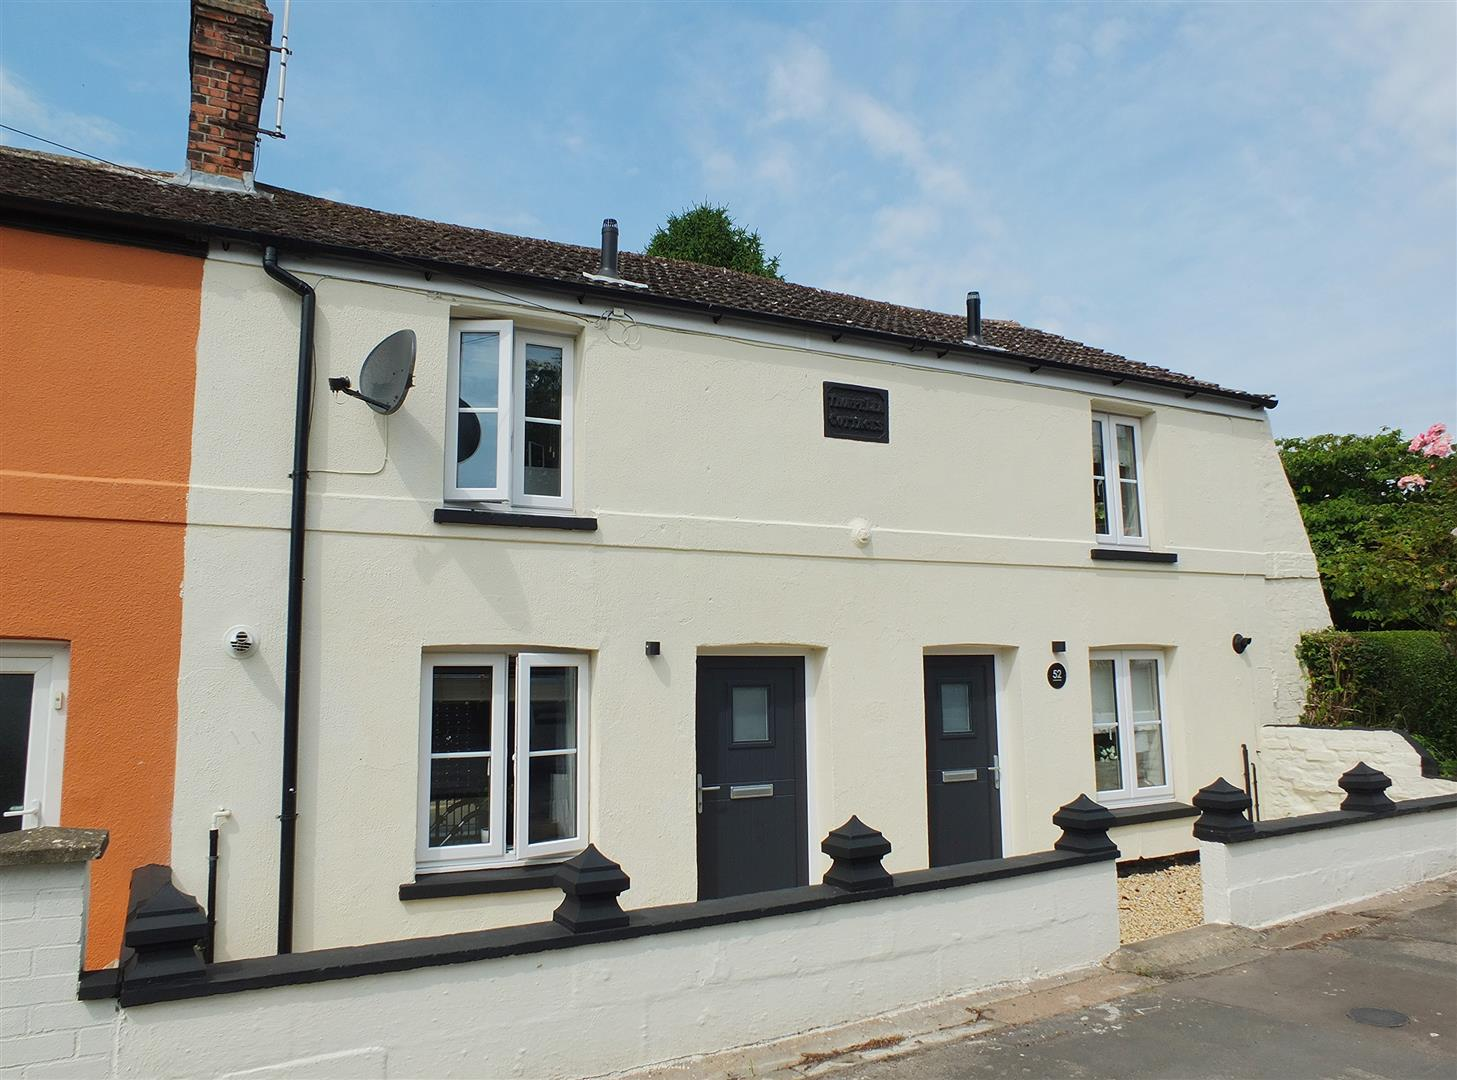 2 bed terraced house for sale in Long Sutton Spalding, PE12 9EA 0